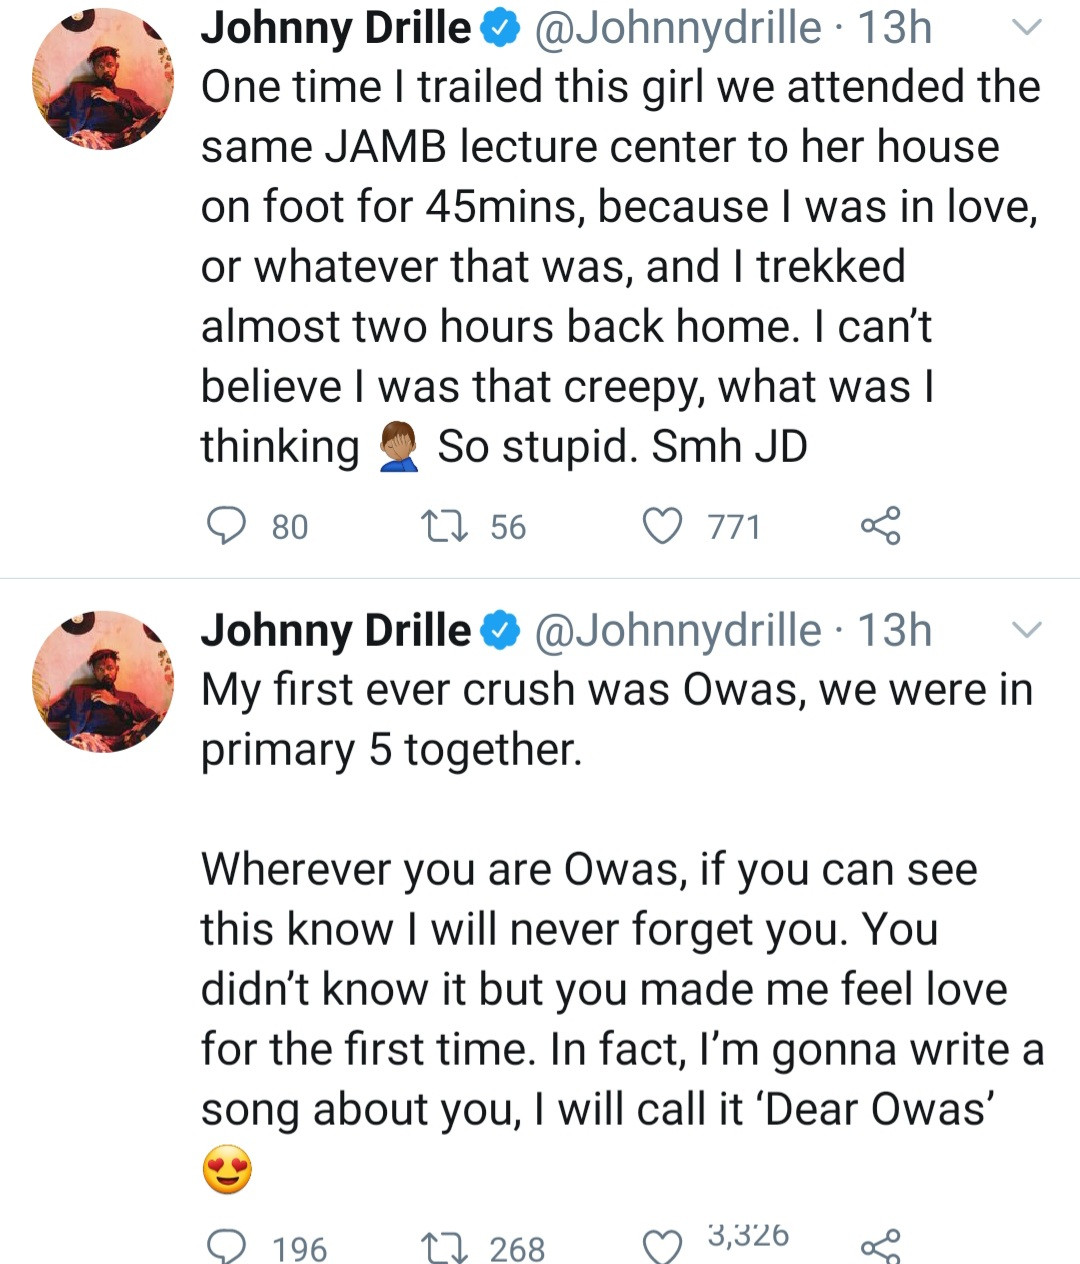 Singer Johnny Drille opens up about the crazy things he